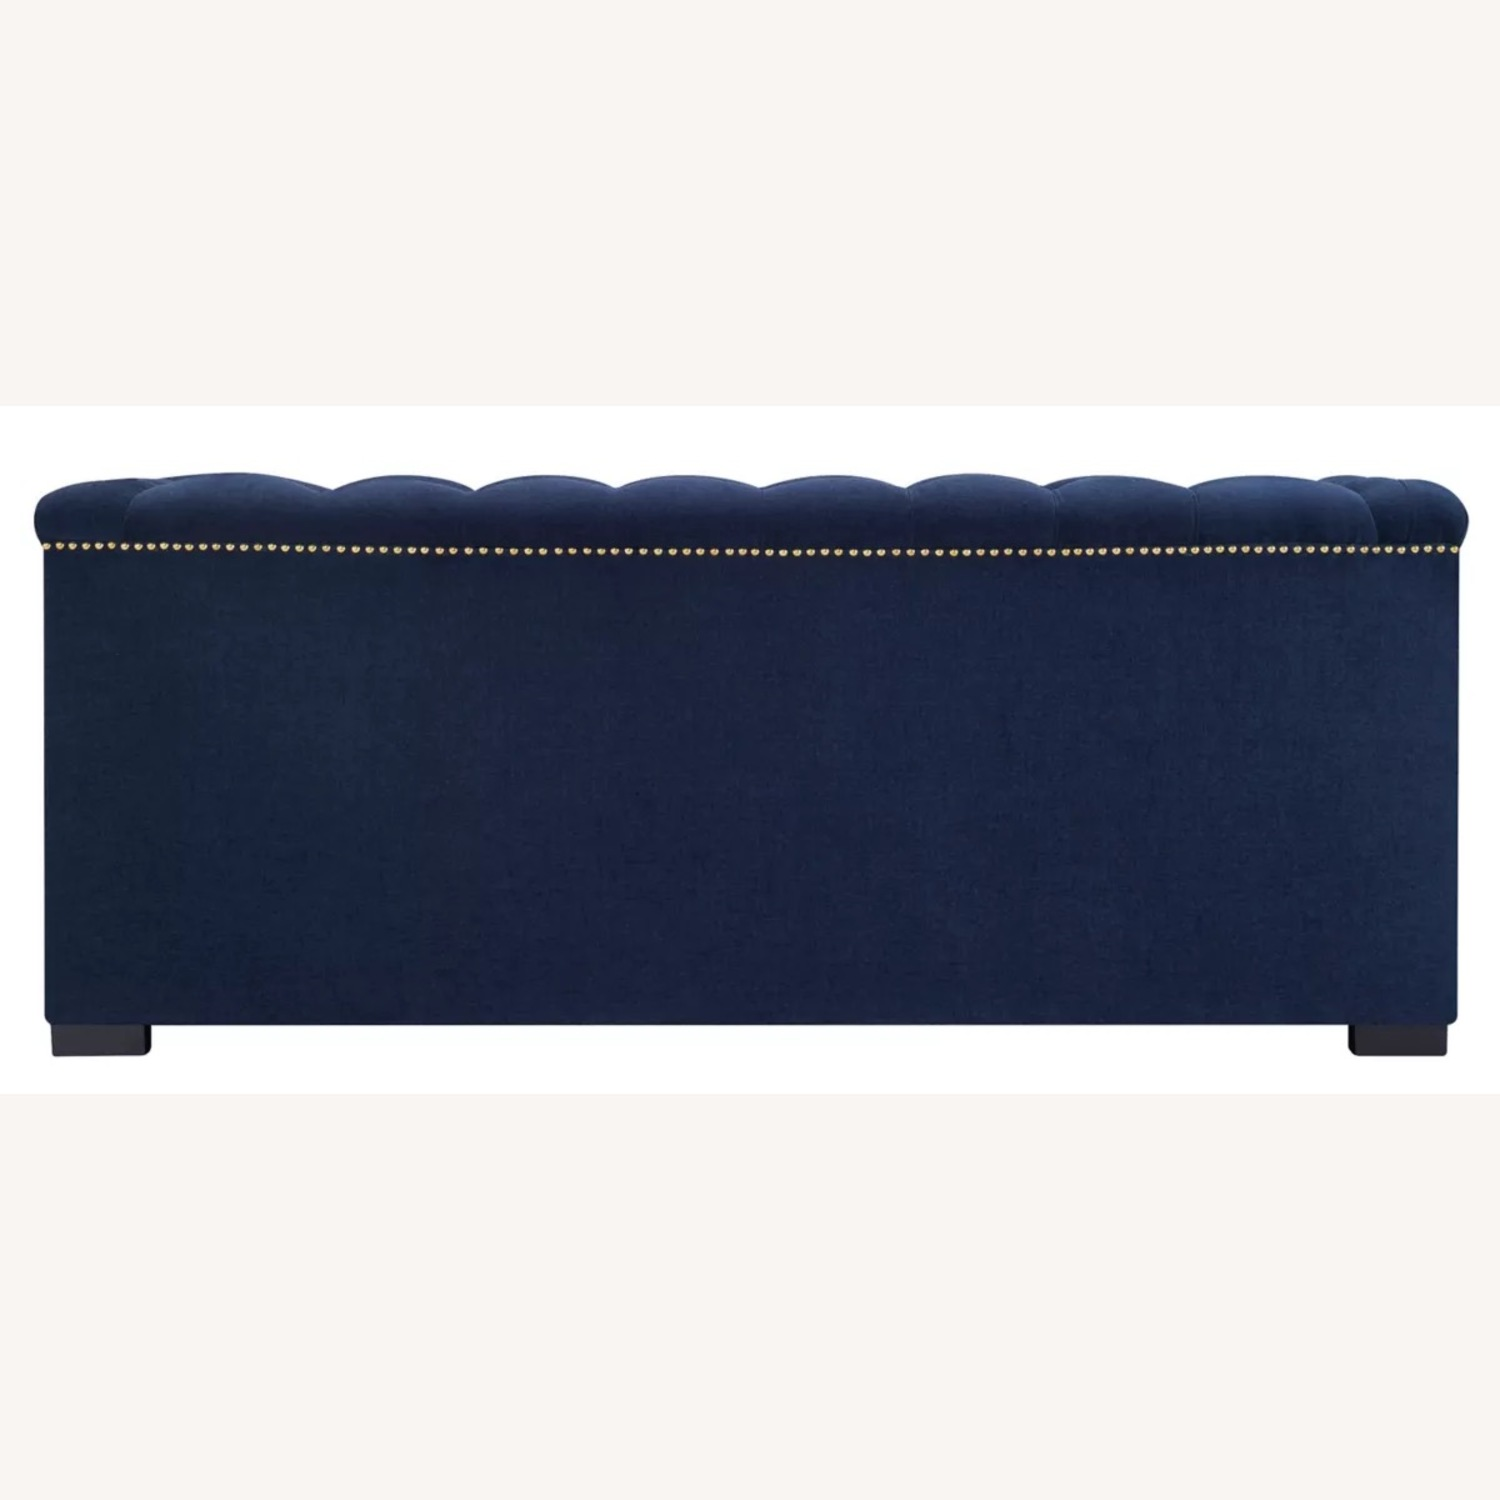 Raymour Flanigan Navy Tufted Loveseat - image-8